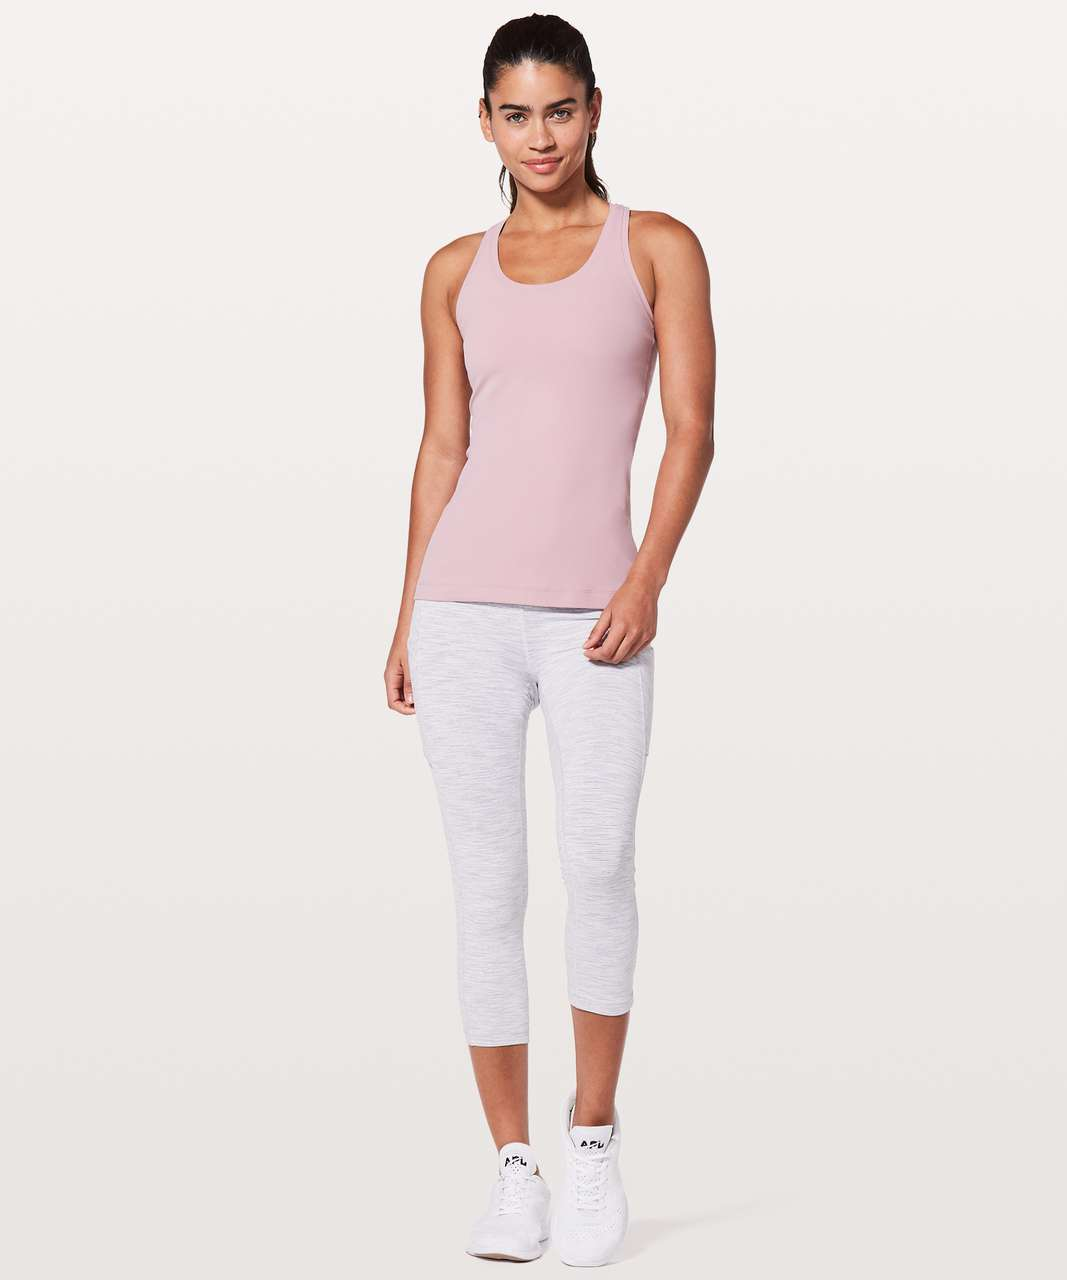 Lululemon Cool Racerback II *Nulu - Rose Blush